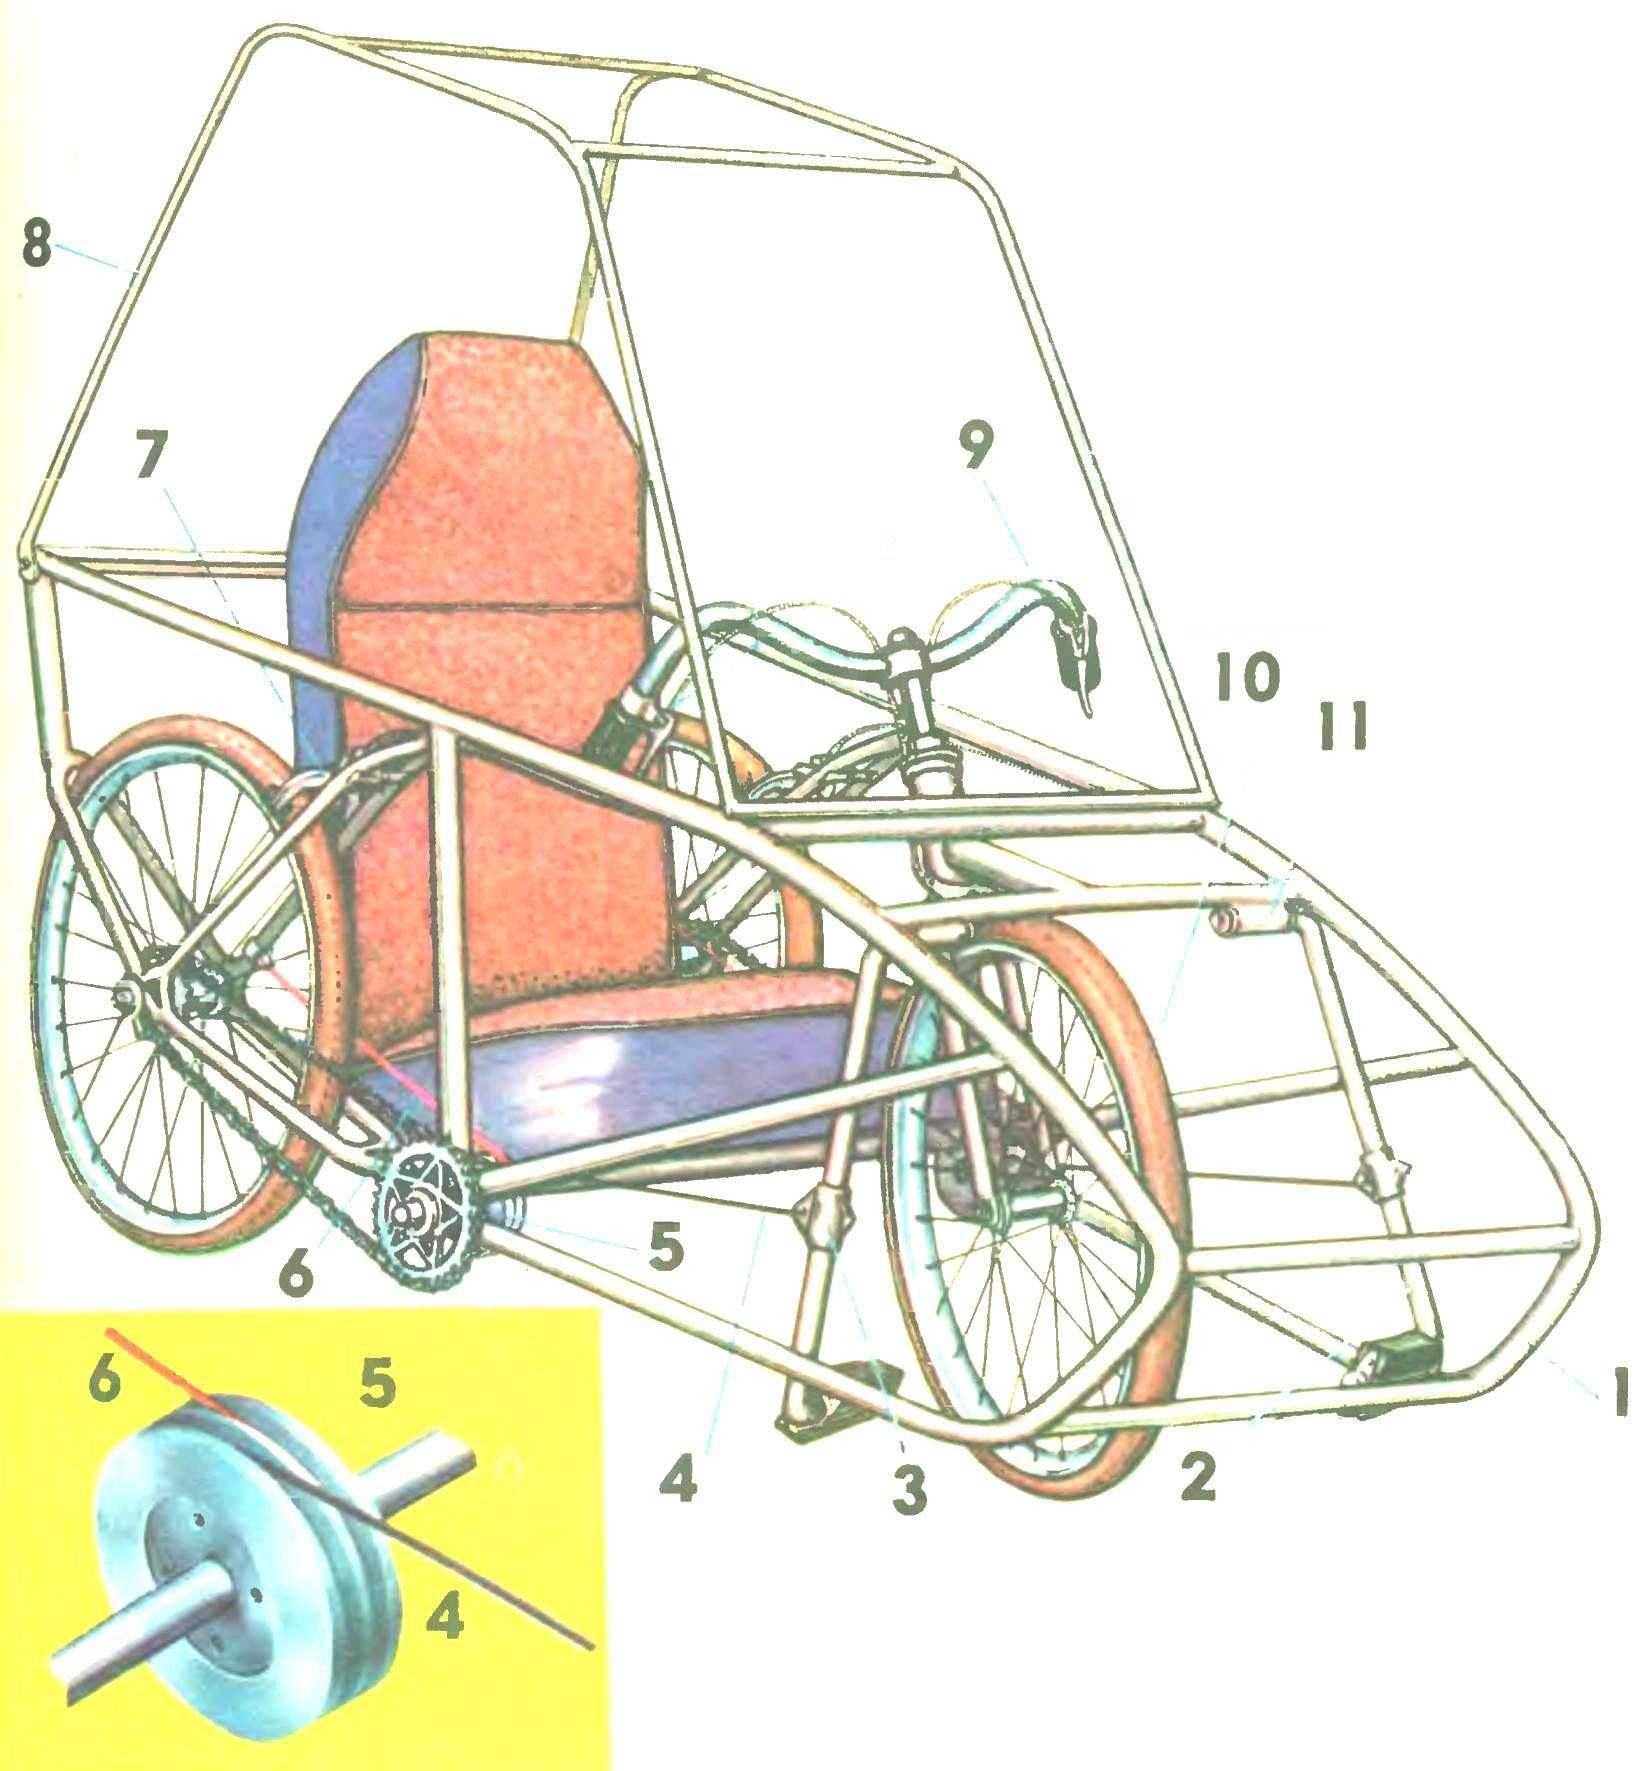 Layout scheme of the velomobile